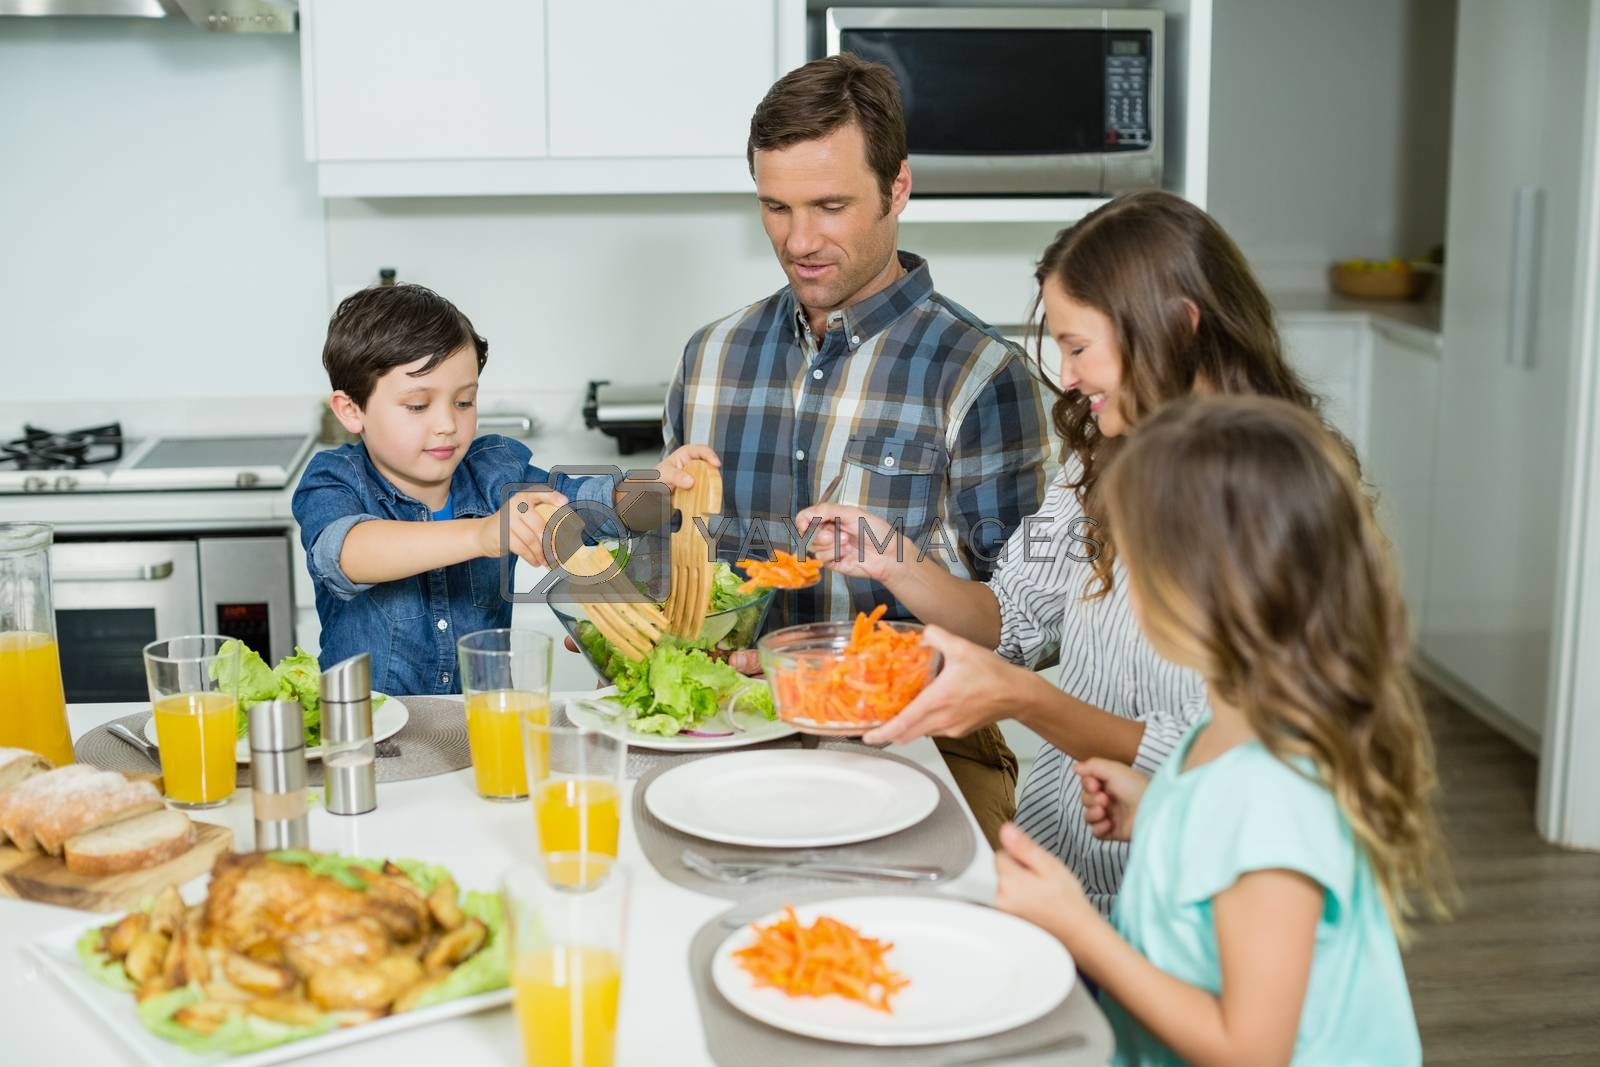 Smiling family having lunch together on dining table at home